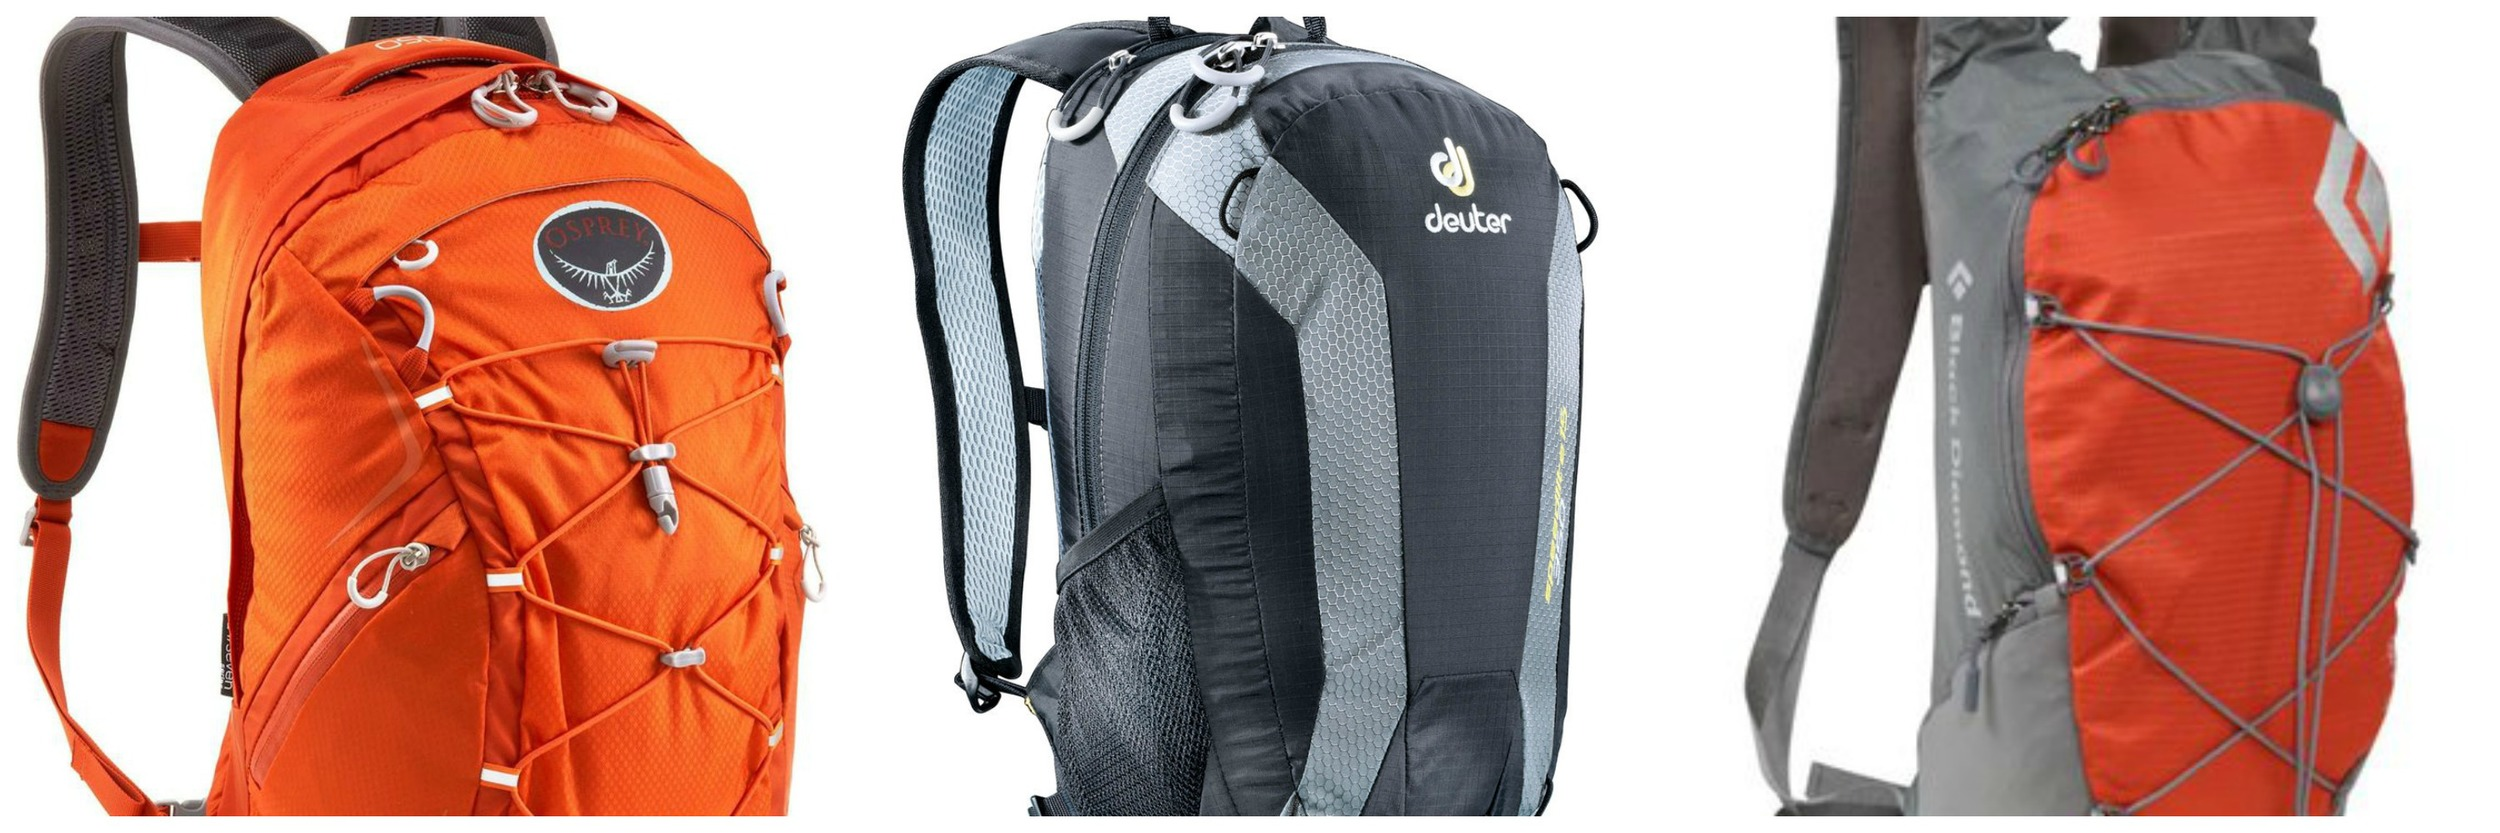 The Best Daypack for Long Term Travel : A Daypack Review for ...